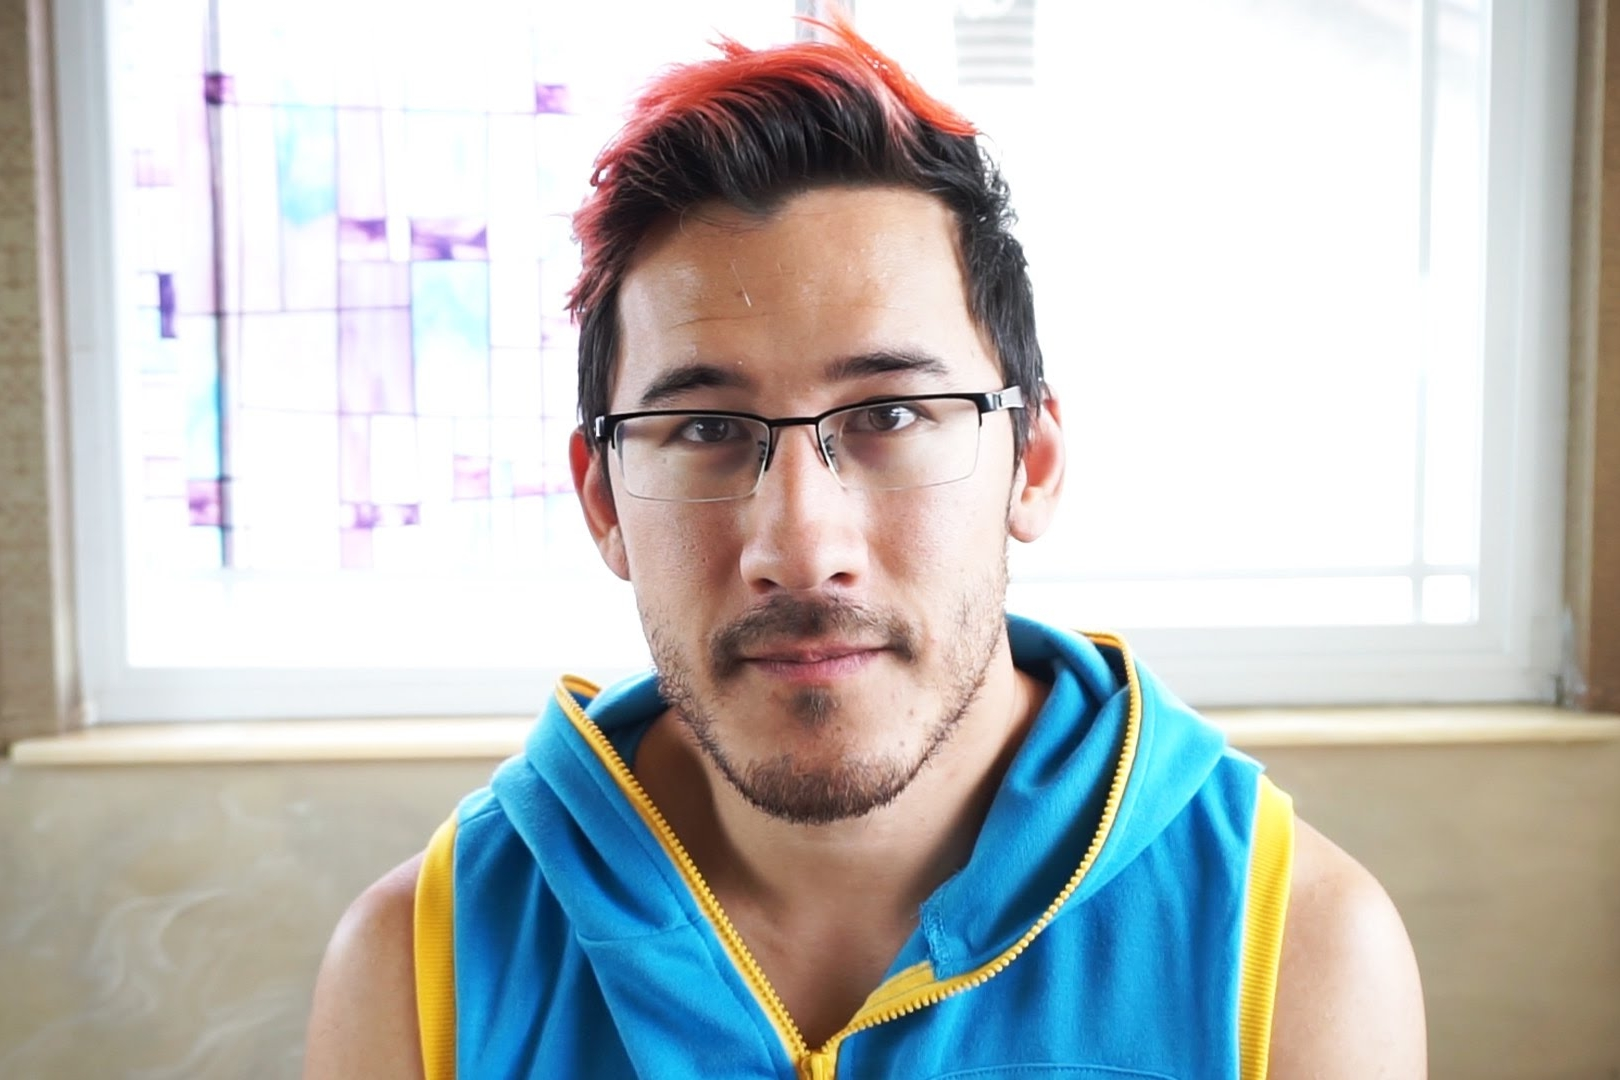 MARKIPLIER - Social Media Influencer